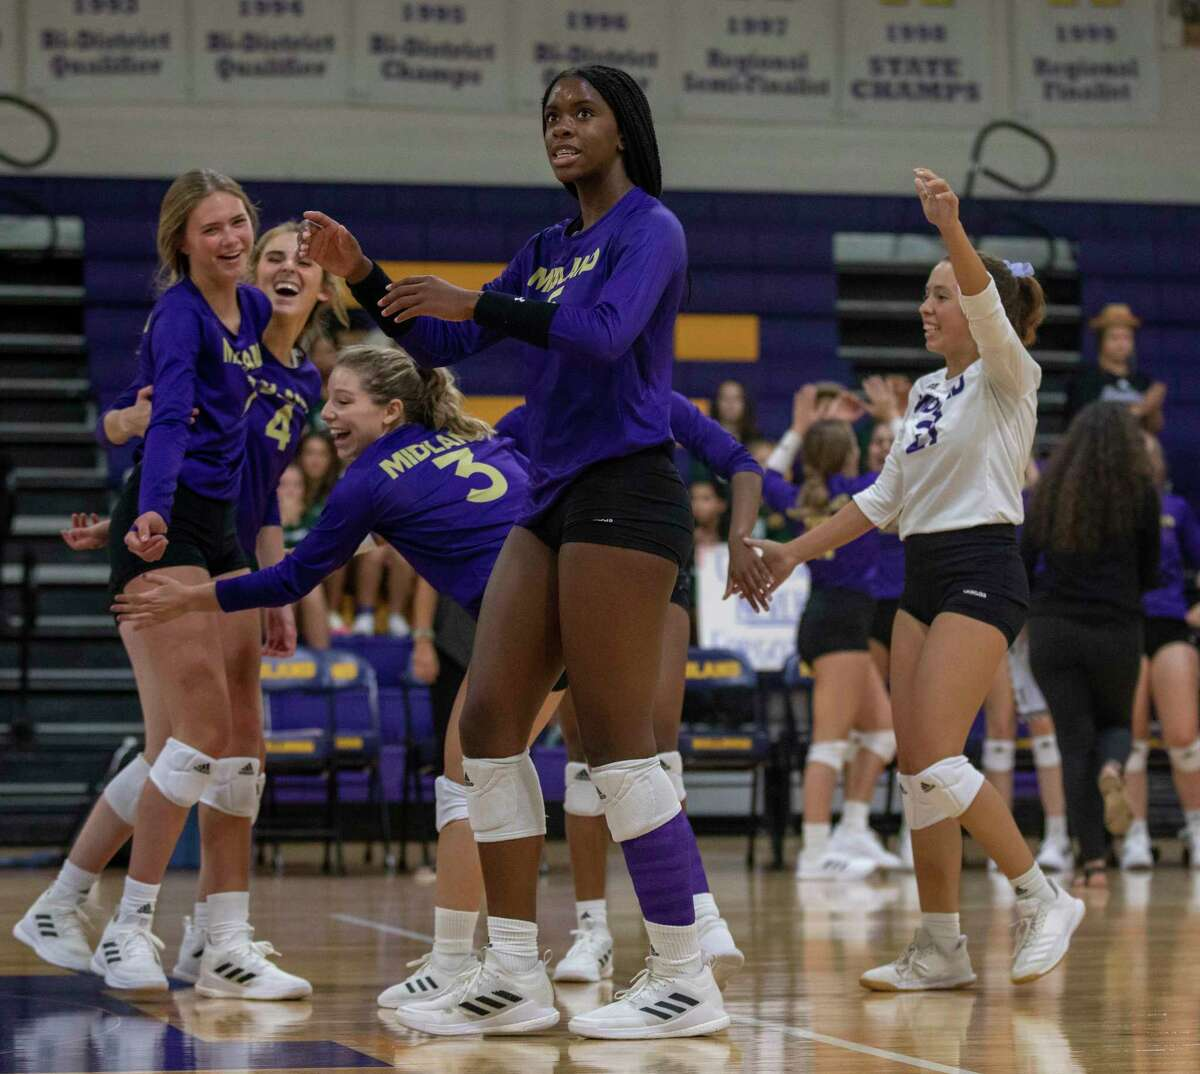 Midland High players celebrate a point Sept. 10, 2021 at Midland High School. Jacy Lewis/Reporter-Telegram